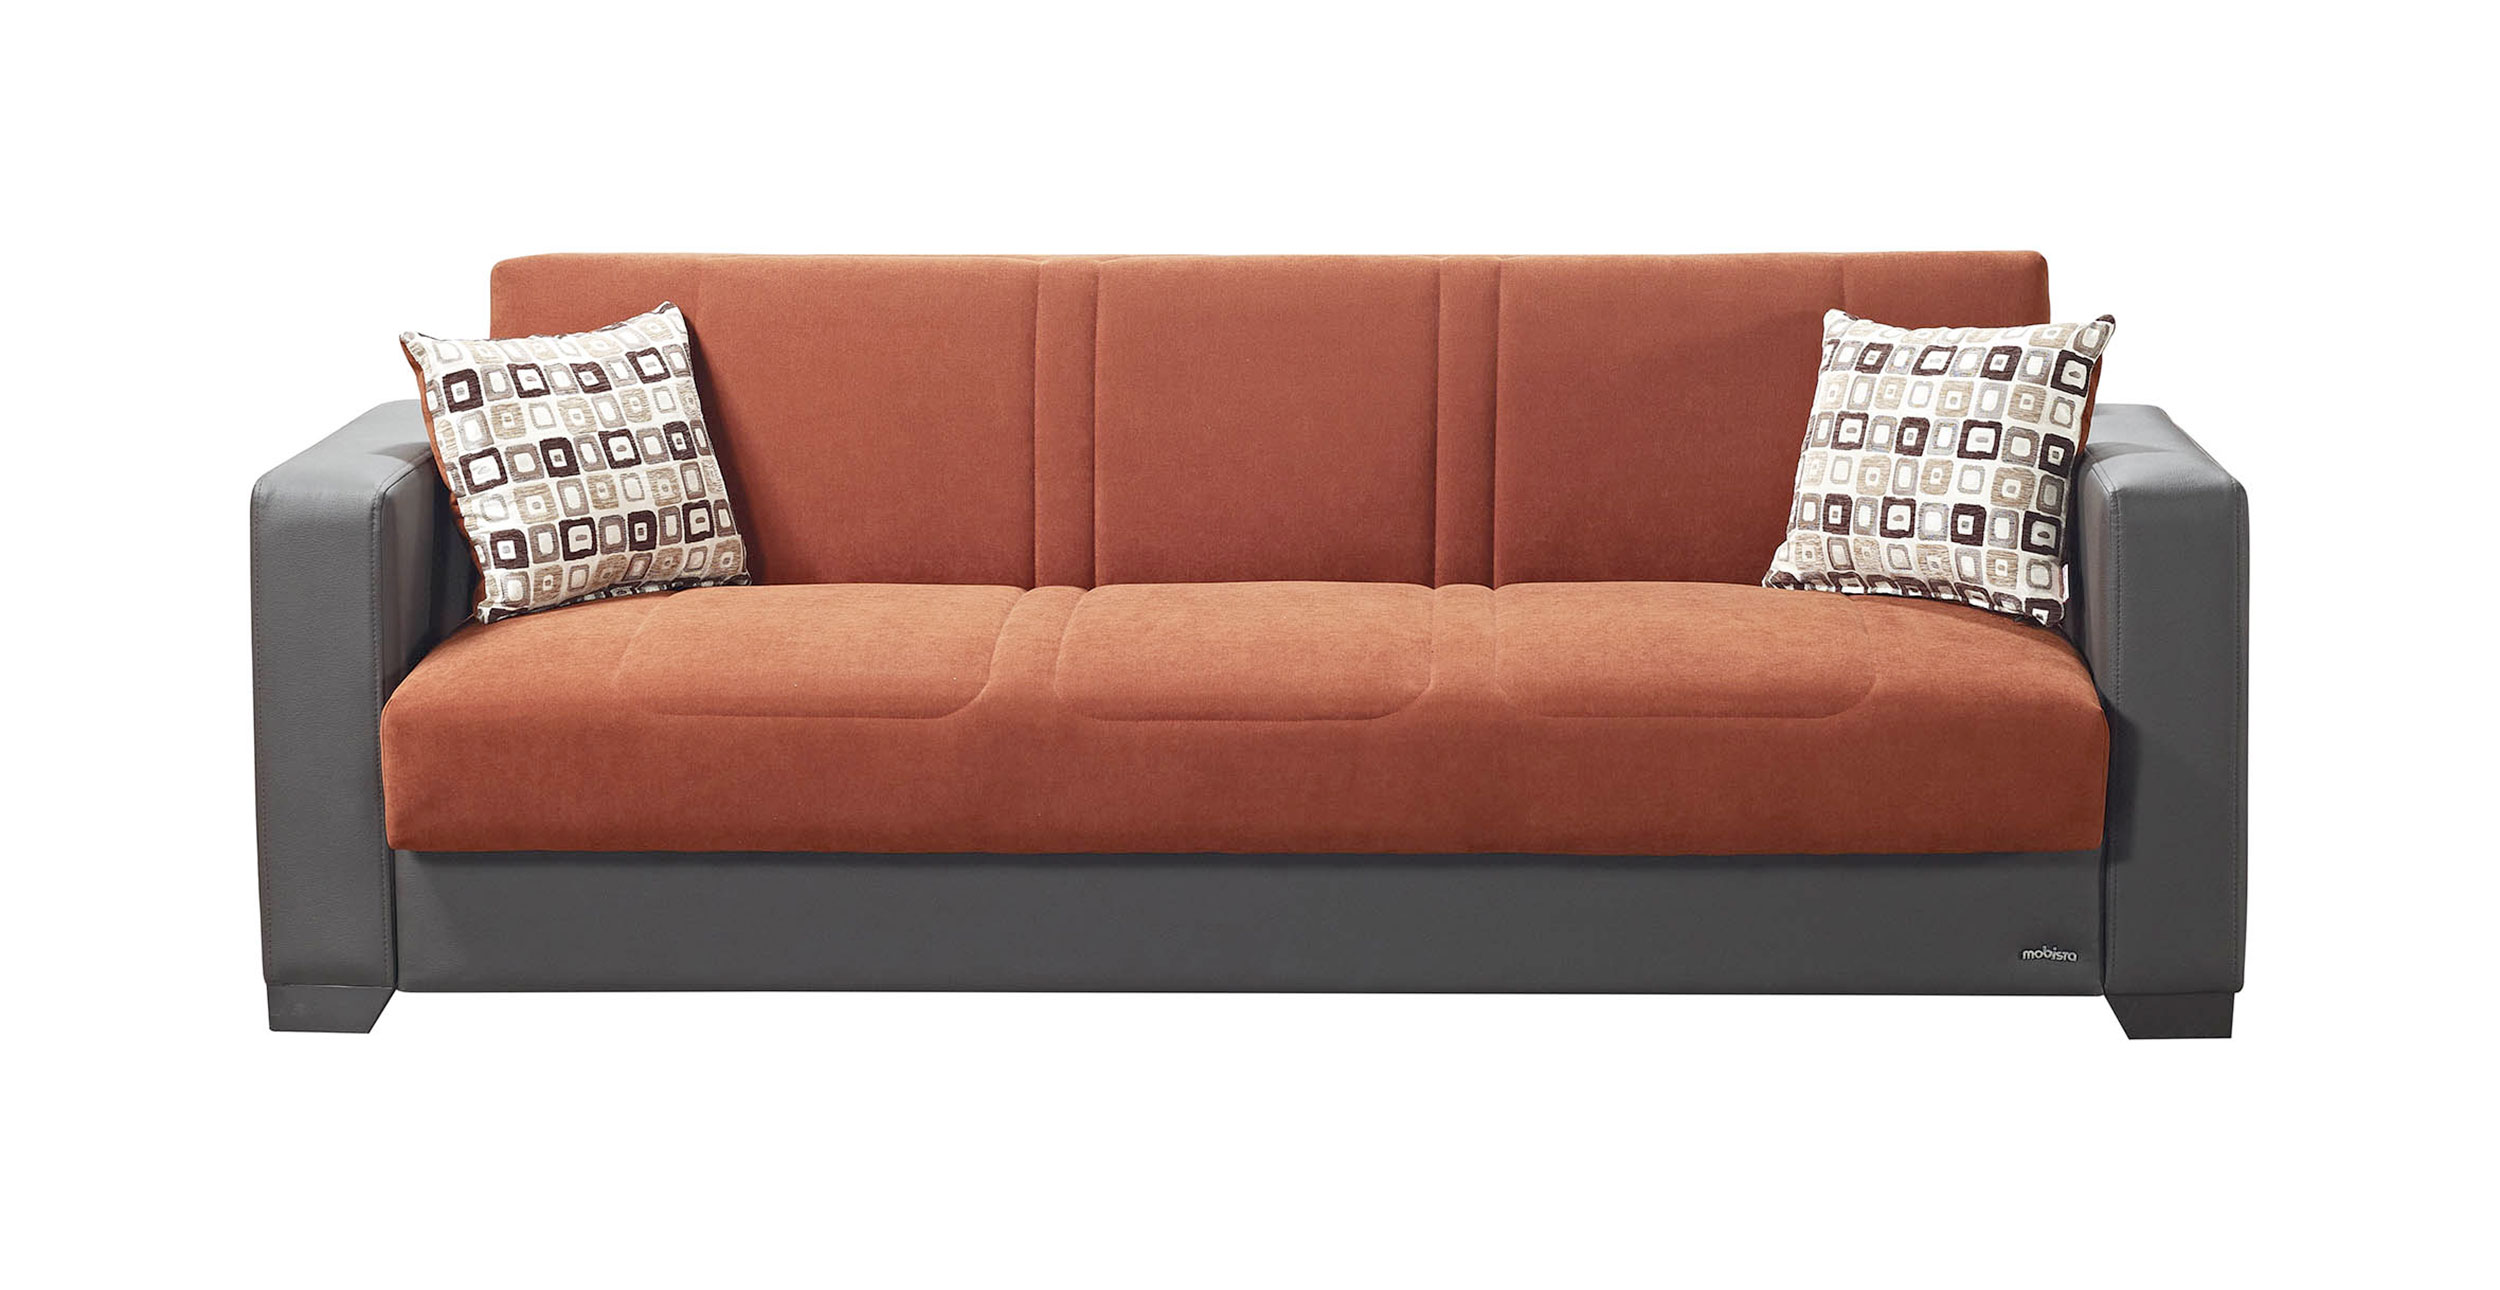 Relaxon Carisma Terra Cotta Sofa Bed By Mobista